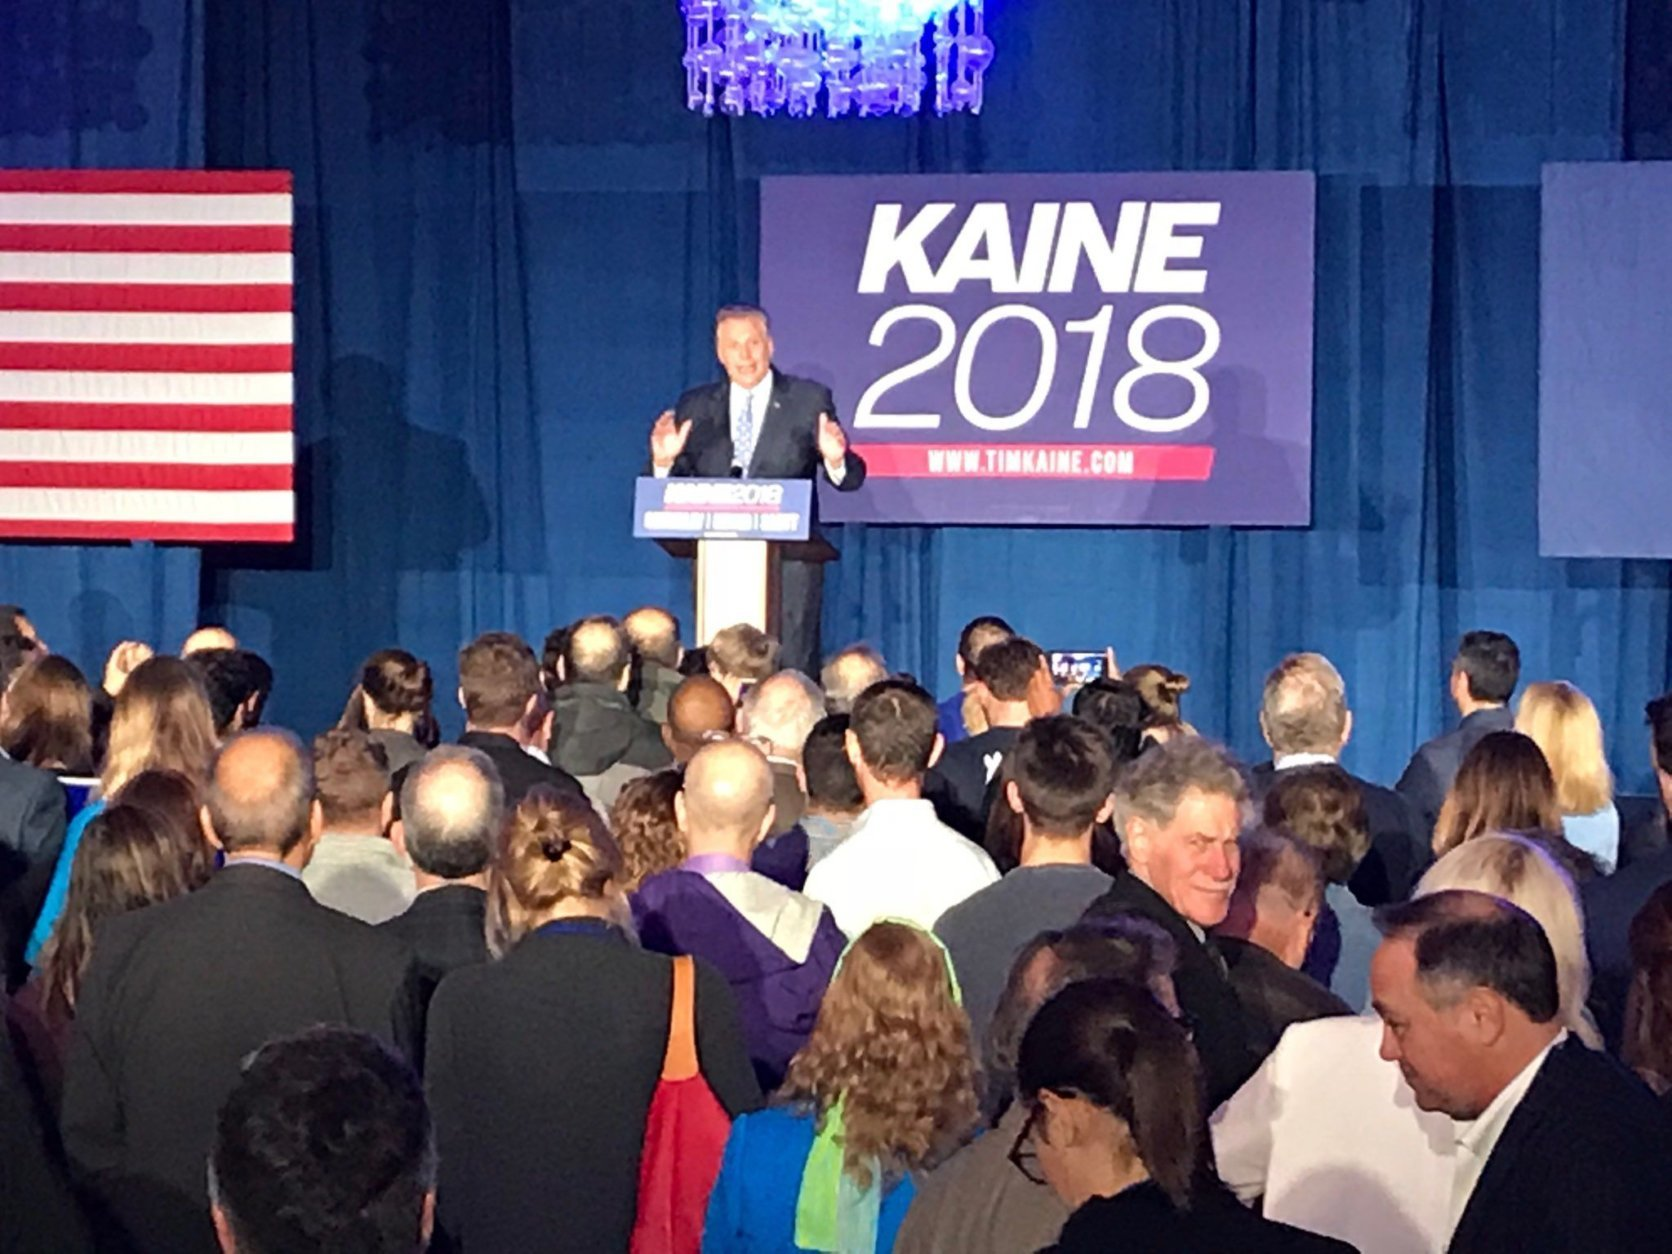 Virginia Democrats celebrated Sen. Tim Kaine's re-election with a who's who of the party's leaders in Falls Church, including former Gov. Terry McAuliffe. (WTOP/Mitchell Miller)